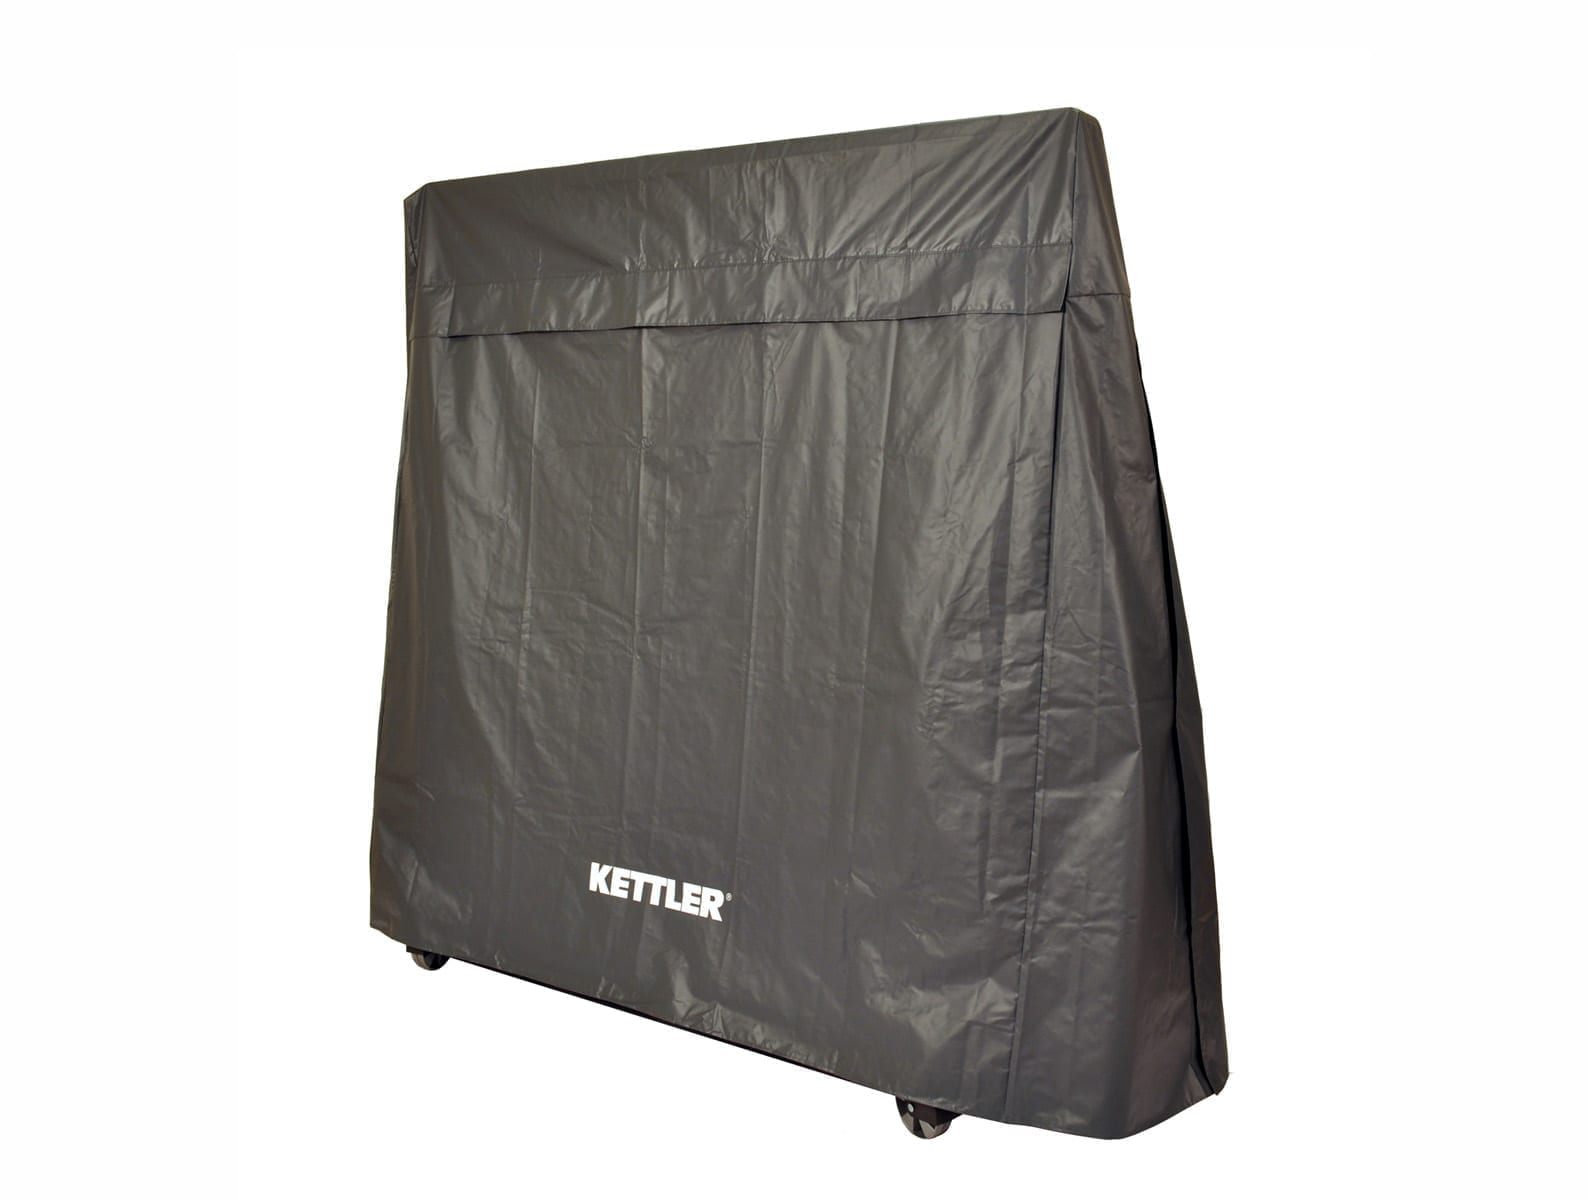 Kettler Outdoor Table Tennis Cover Ping Pong Table Cover